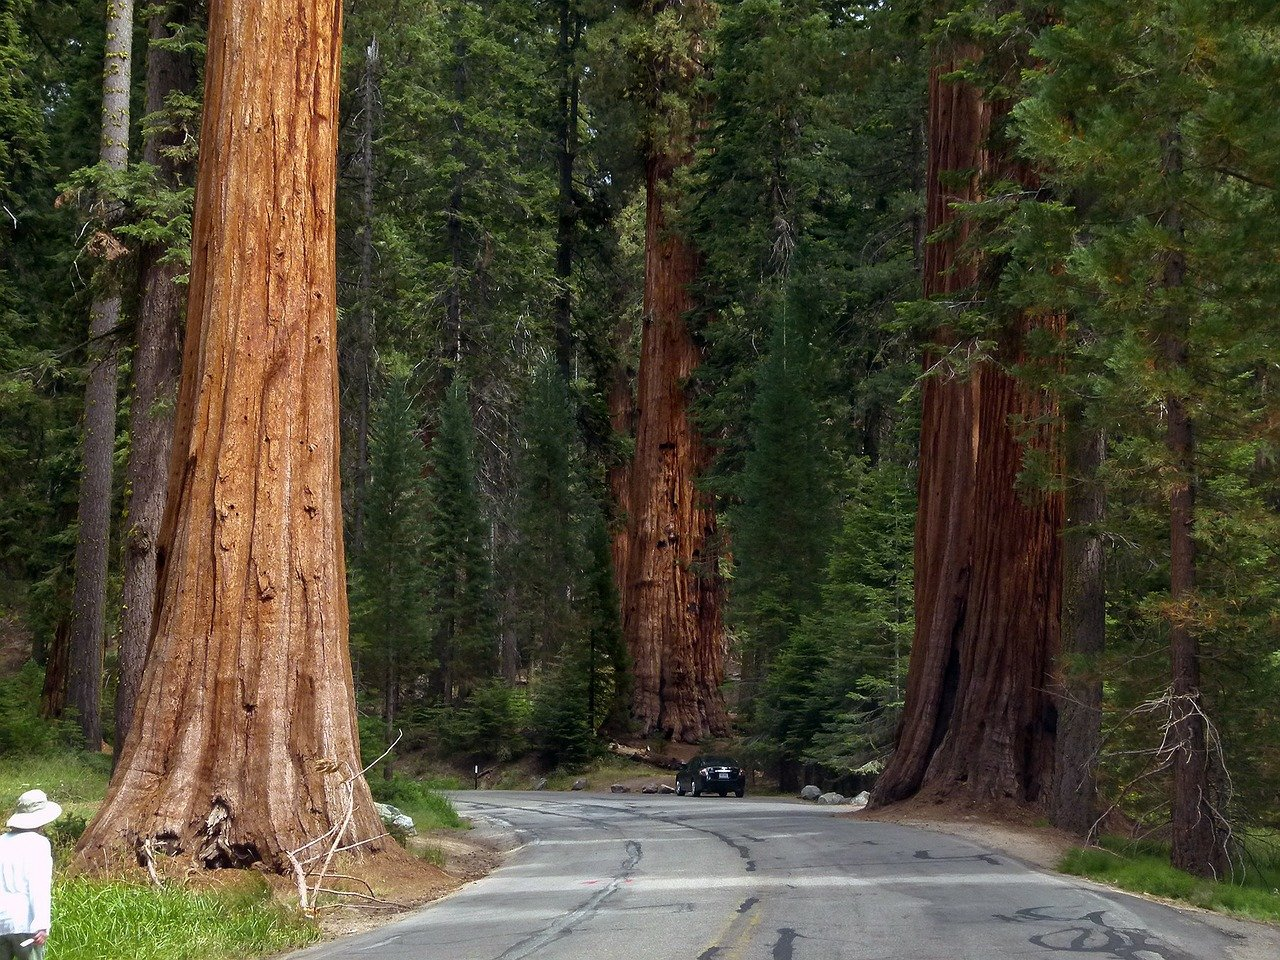 Sequoia Trees. Image credit: Pixabay